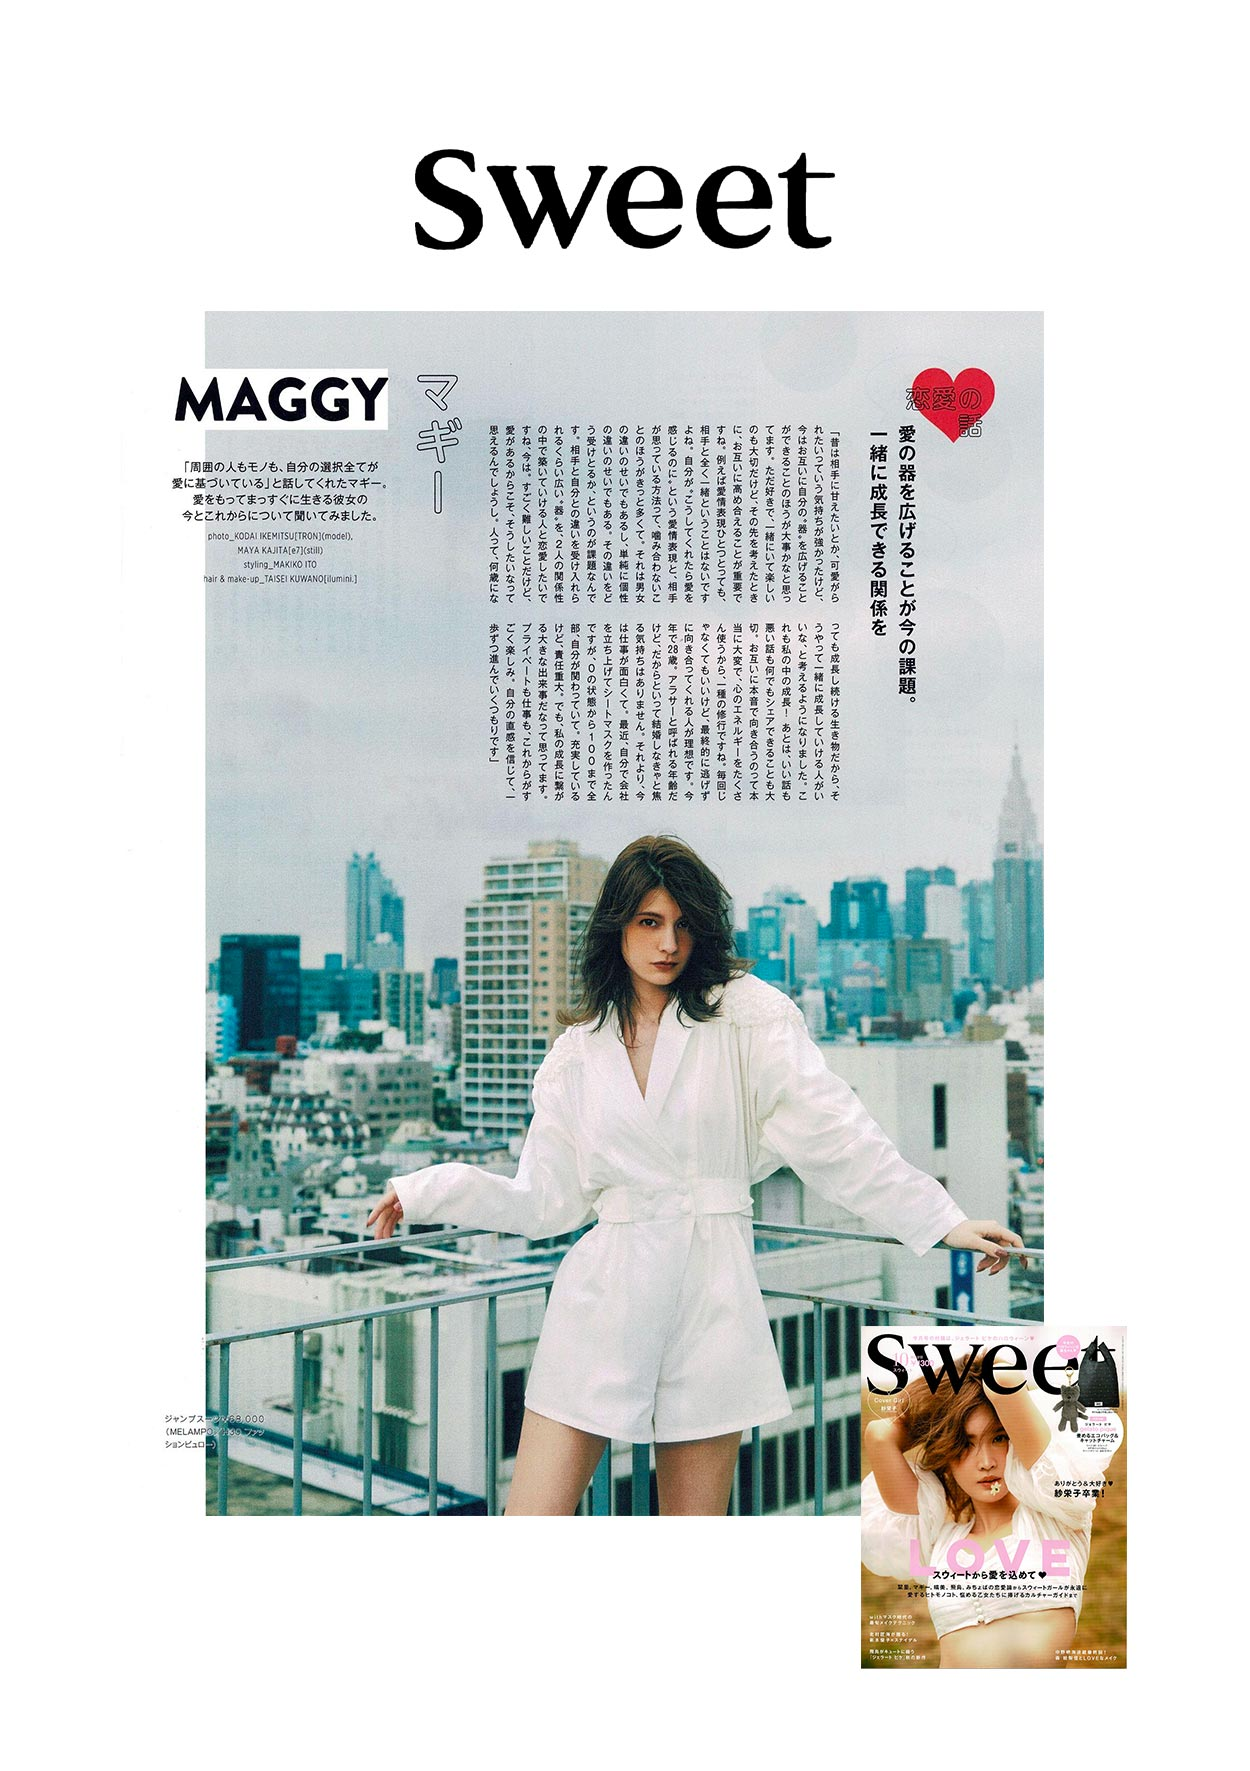 melampo press on sweet Japan magazine - photo 1